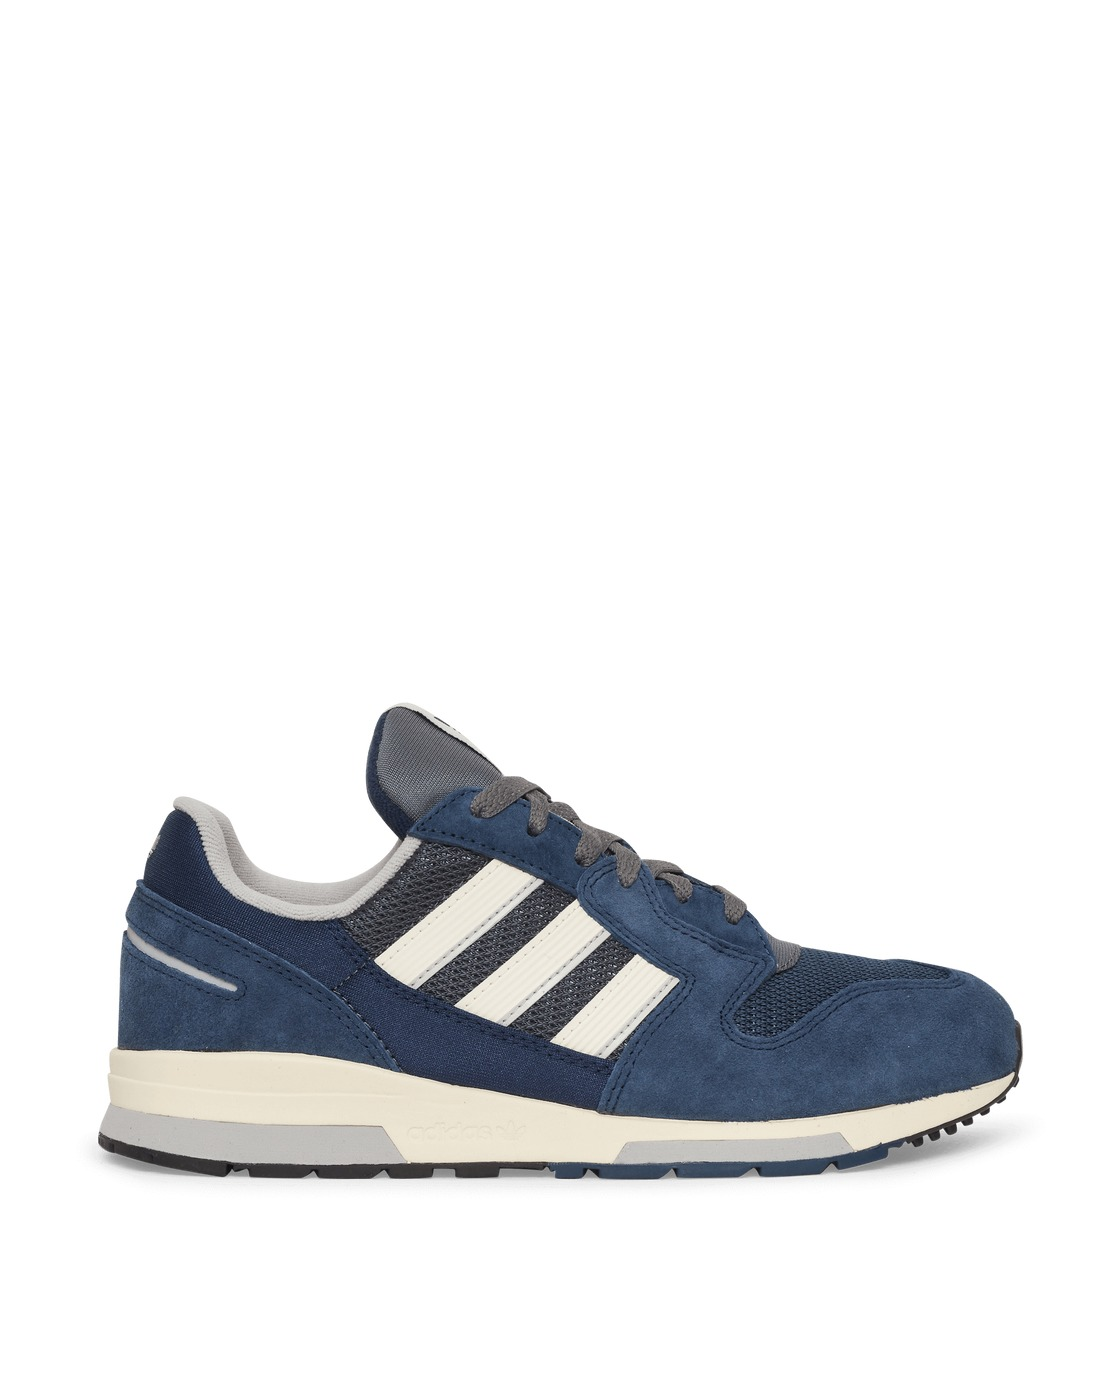 Photo: Adidas Originals Zx 420 Sneakers Navy/Off White